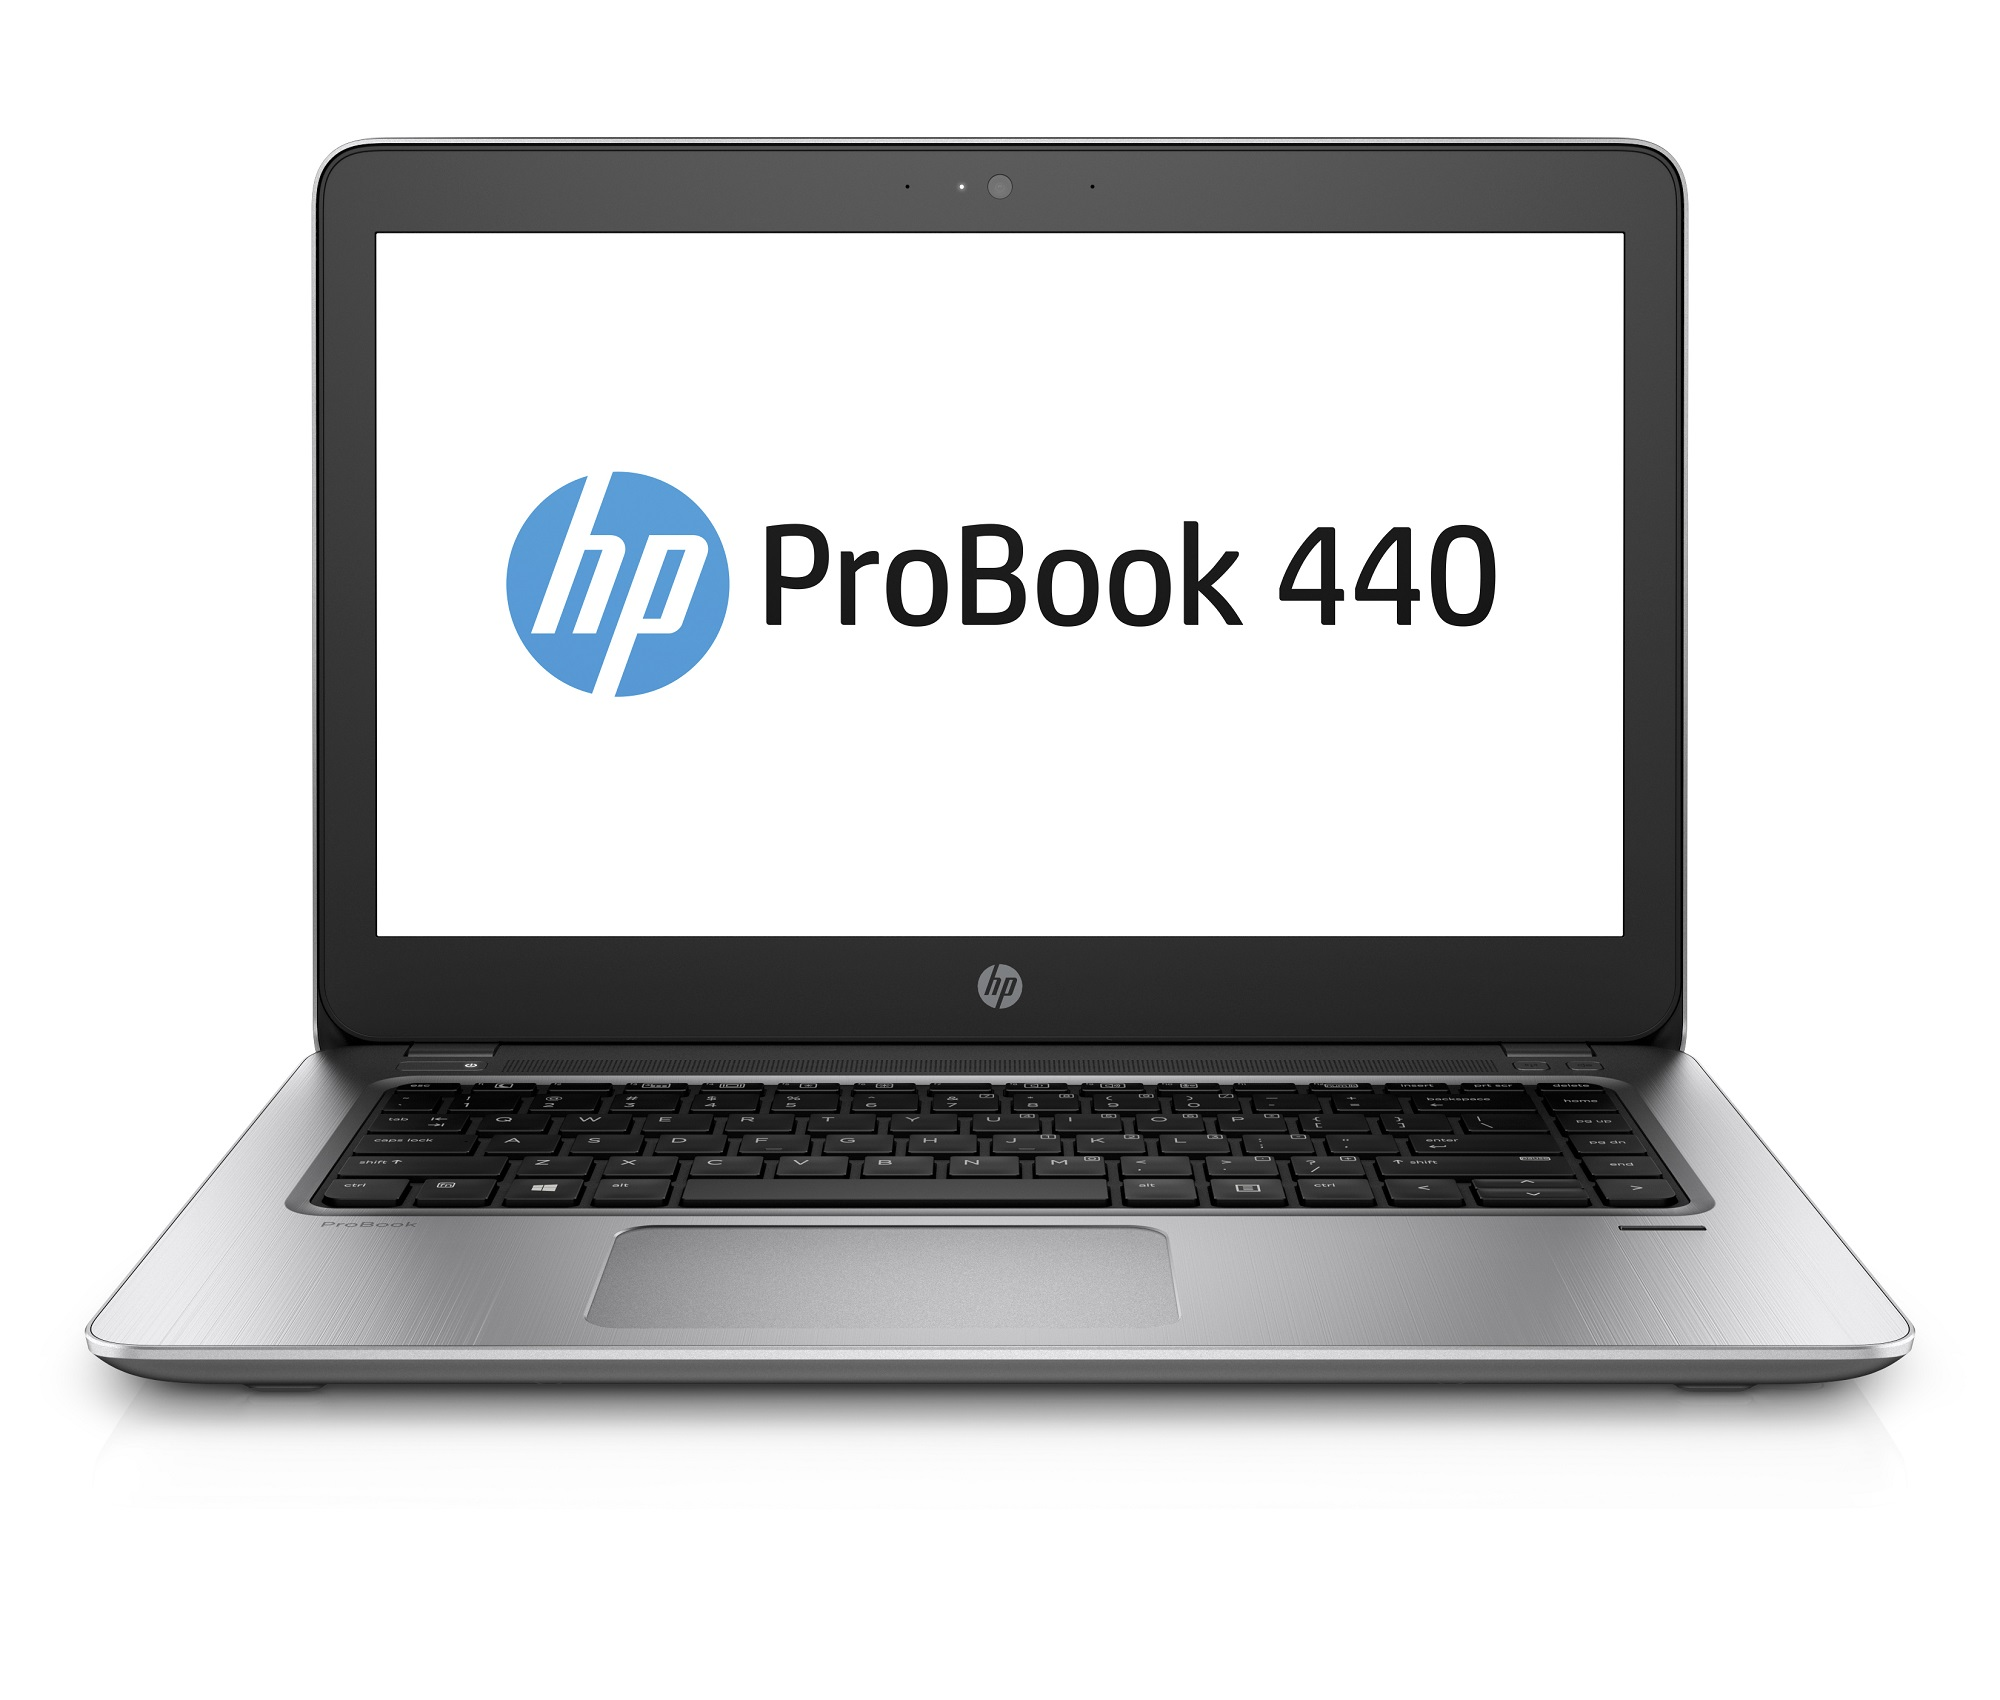 HP ProBook 440 G4 i3-7100U/4GB/256GB SSD+slot 2,5''/14'' FHD/Backlit kbd, Win 10 Pro